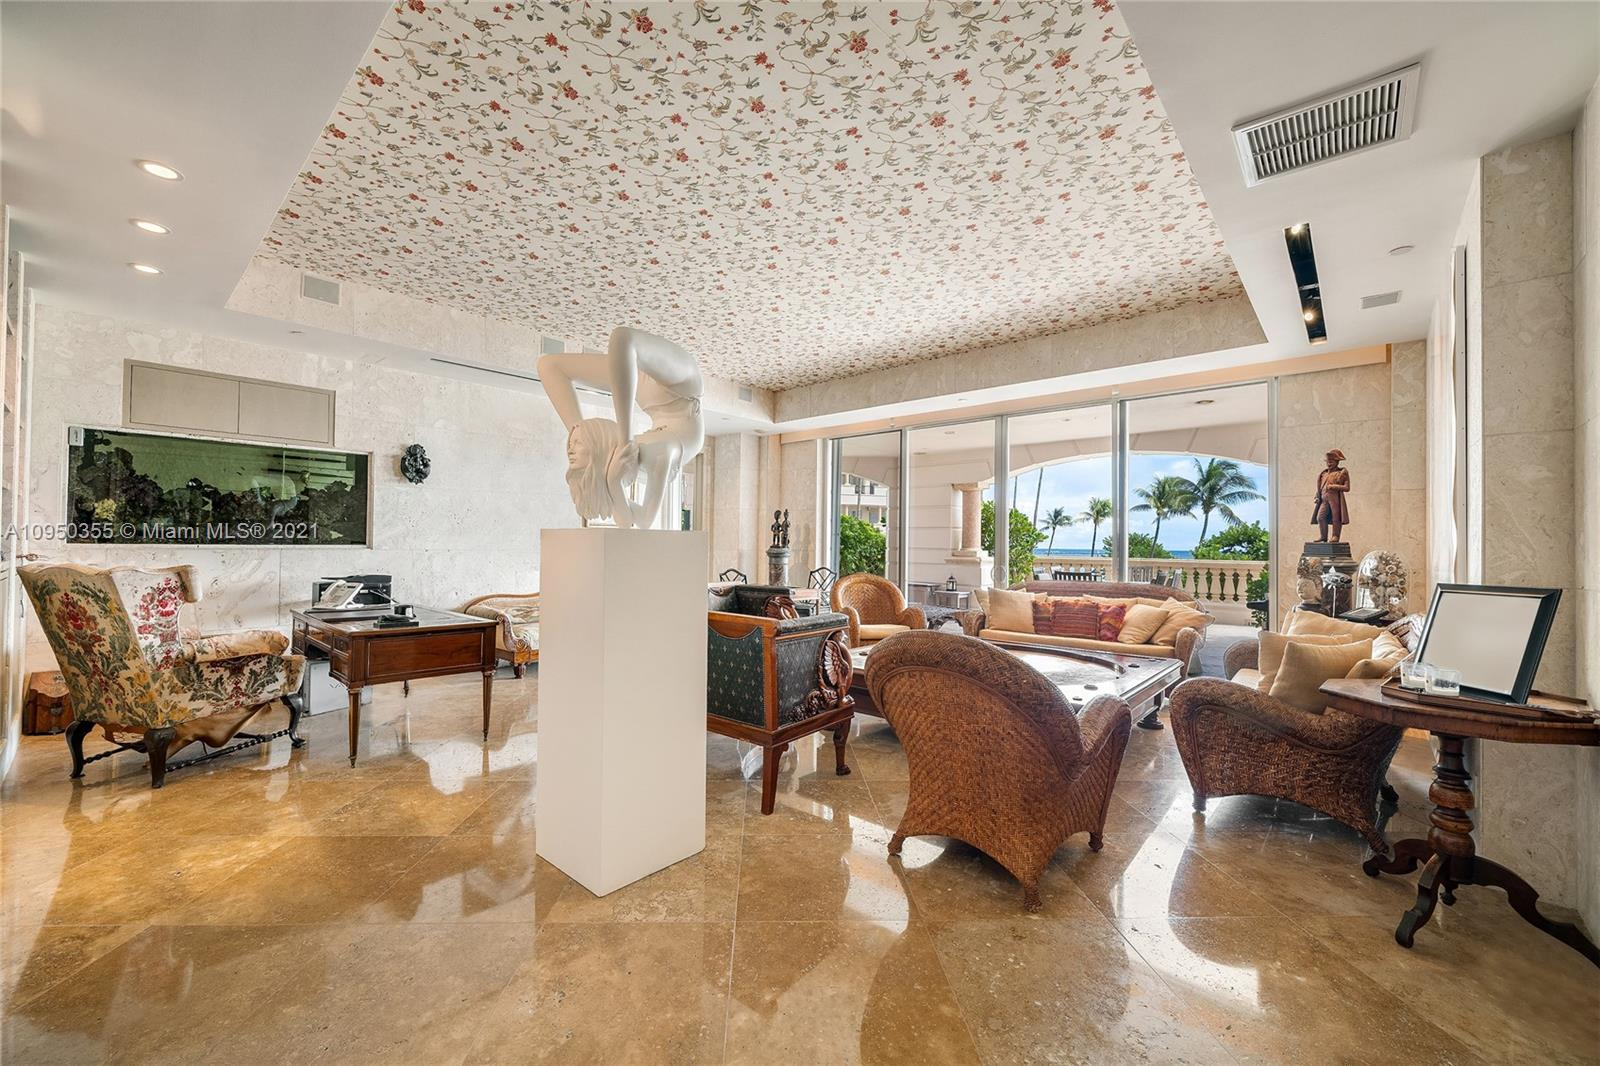 This one-of-a-kind 5BR/6+2BA ground floor townhouse is truly like no other on Fisher Island. The 2-story unit boasts 6,268 SF of luxury w/stunning custom finishes, coquina stone walls, exquisite marble floors & expansive ground floor terrace plus 2nd floor terrace both w/mesmerizing views of the beach & ocean. The principal suite is spacious, beautiful principal spa bathroom, adjacent family room, den/office & 2 additional bedrooms each w/full baths. The second level is accesses by an elegant stone/glass staircase & features a spacious formal living & dining rooms w/ terrace access & direct ocean views, chef's kitchen w/top-of-the-line appliances, staff quarters & large guest suite. Your private beach awaits outside your home. 5-Star Fisher Island amenities complete this amazing offering.